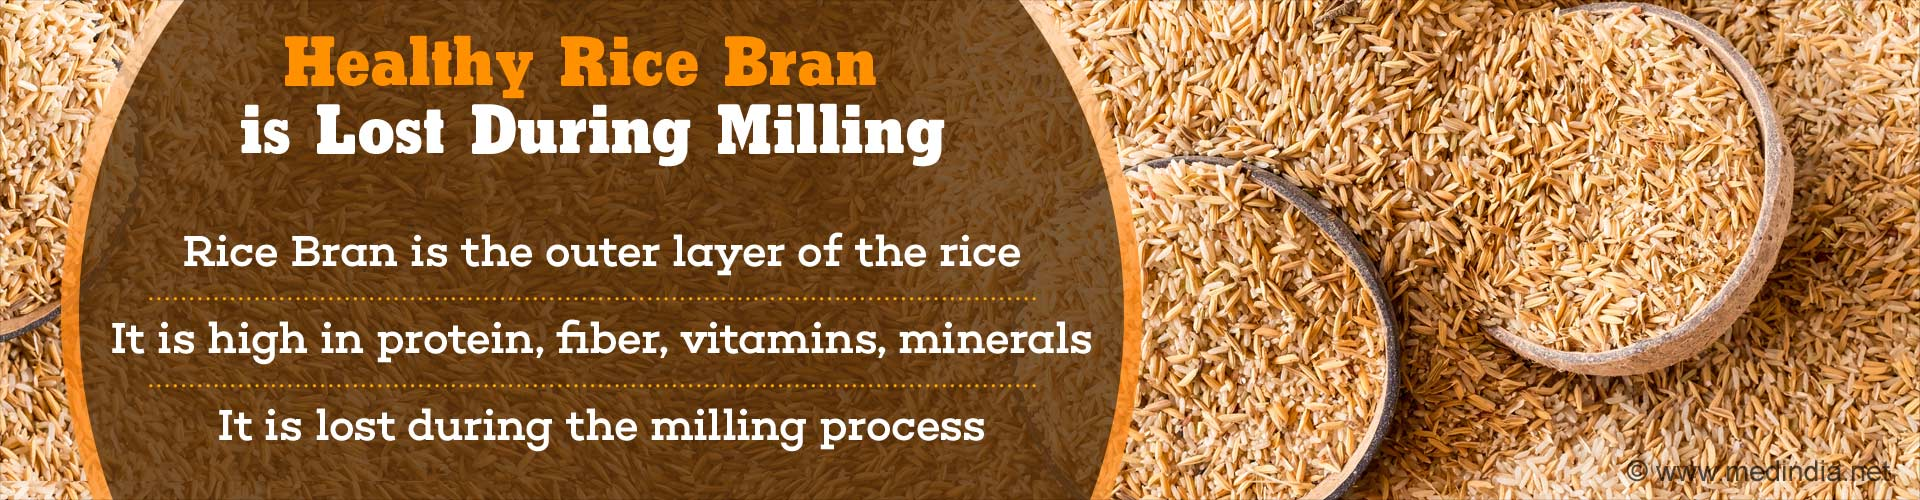 Rice Bran: The Nutrition Packed Part of Rice We Lose Out On